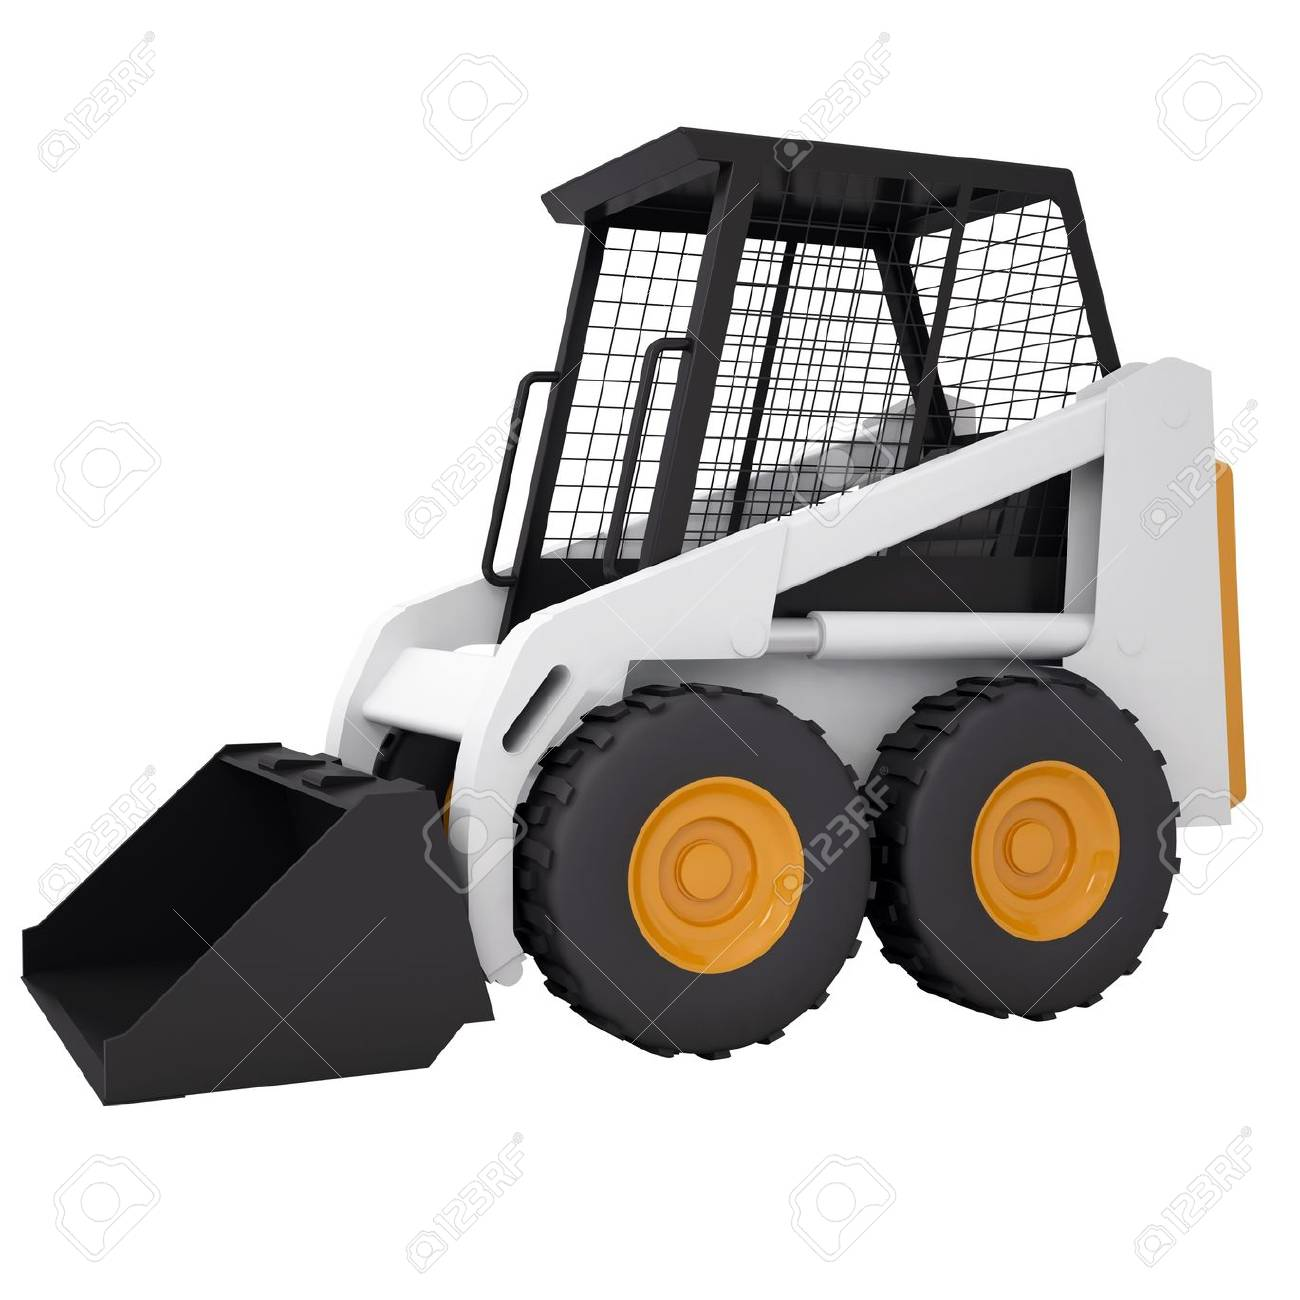 Small tractor  Isolated render on a white background Stock Photo - 18594370